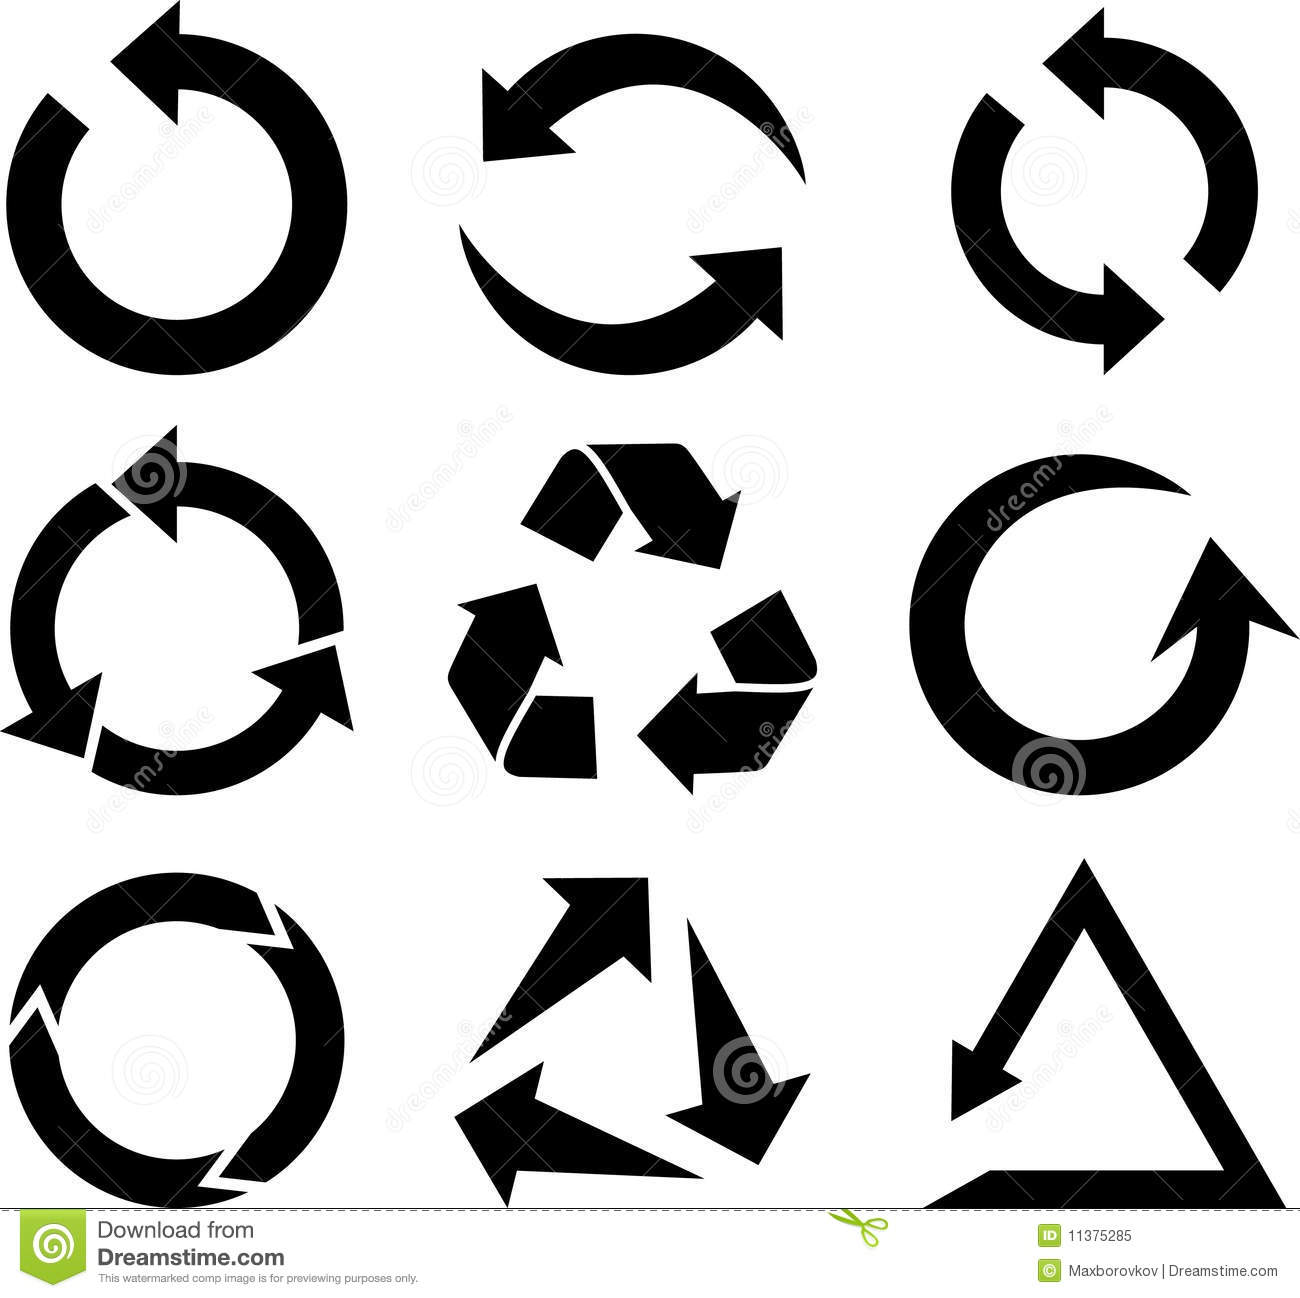 Arrows Icon Set. Royalty Free Stock Photo - Image: 11375285